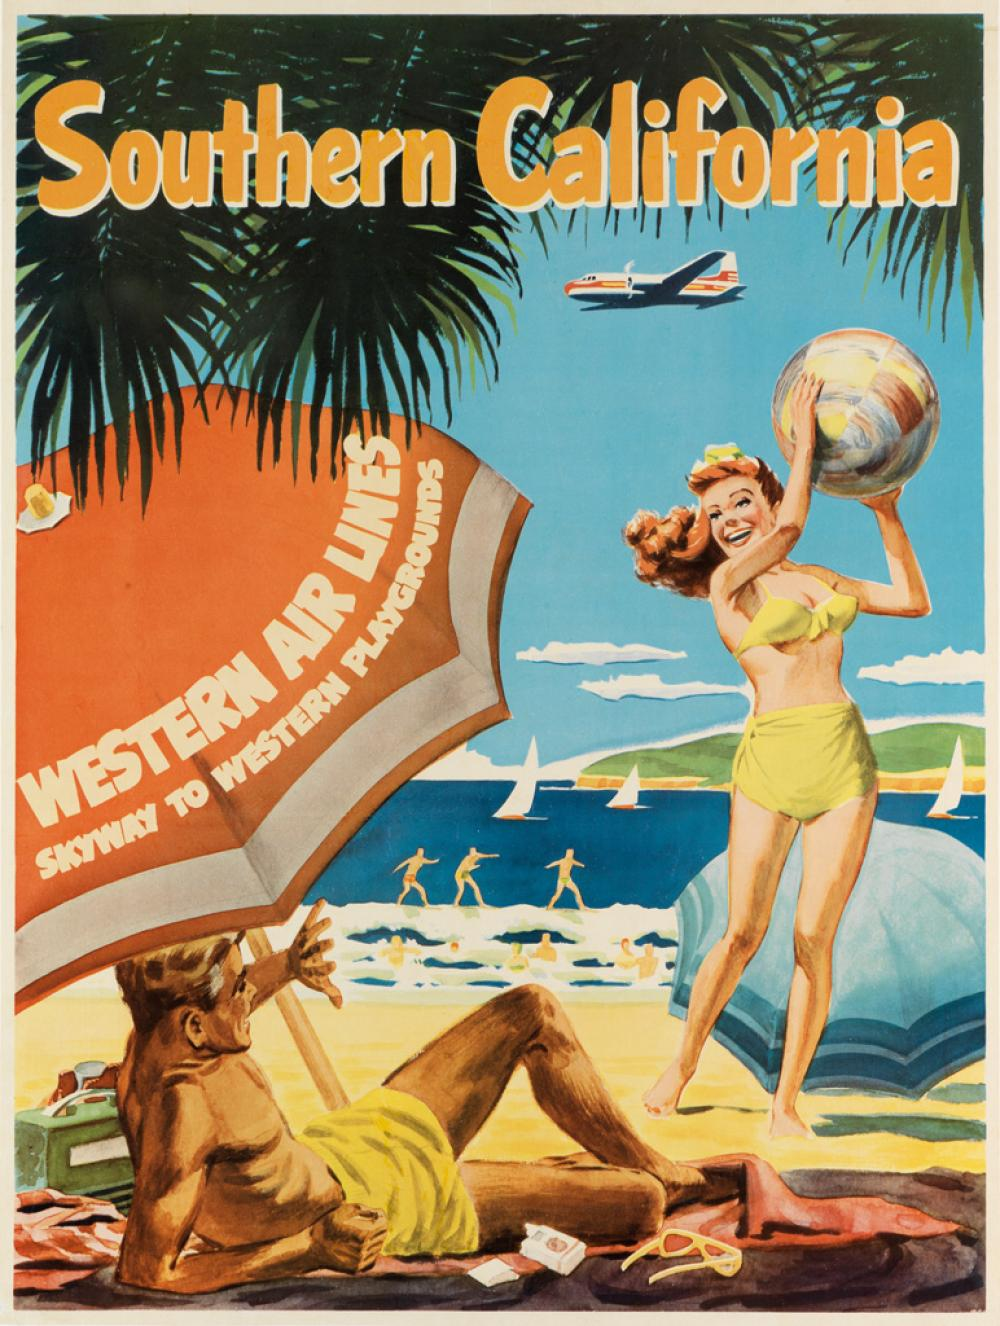 DESIGNER UNKNOWN. SOUTHERN CALIFORNIA / WESTERN AIR LINES. Circa 1954. 27x20 inches, 69x52 cm.